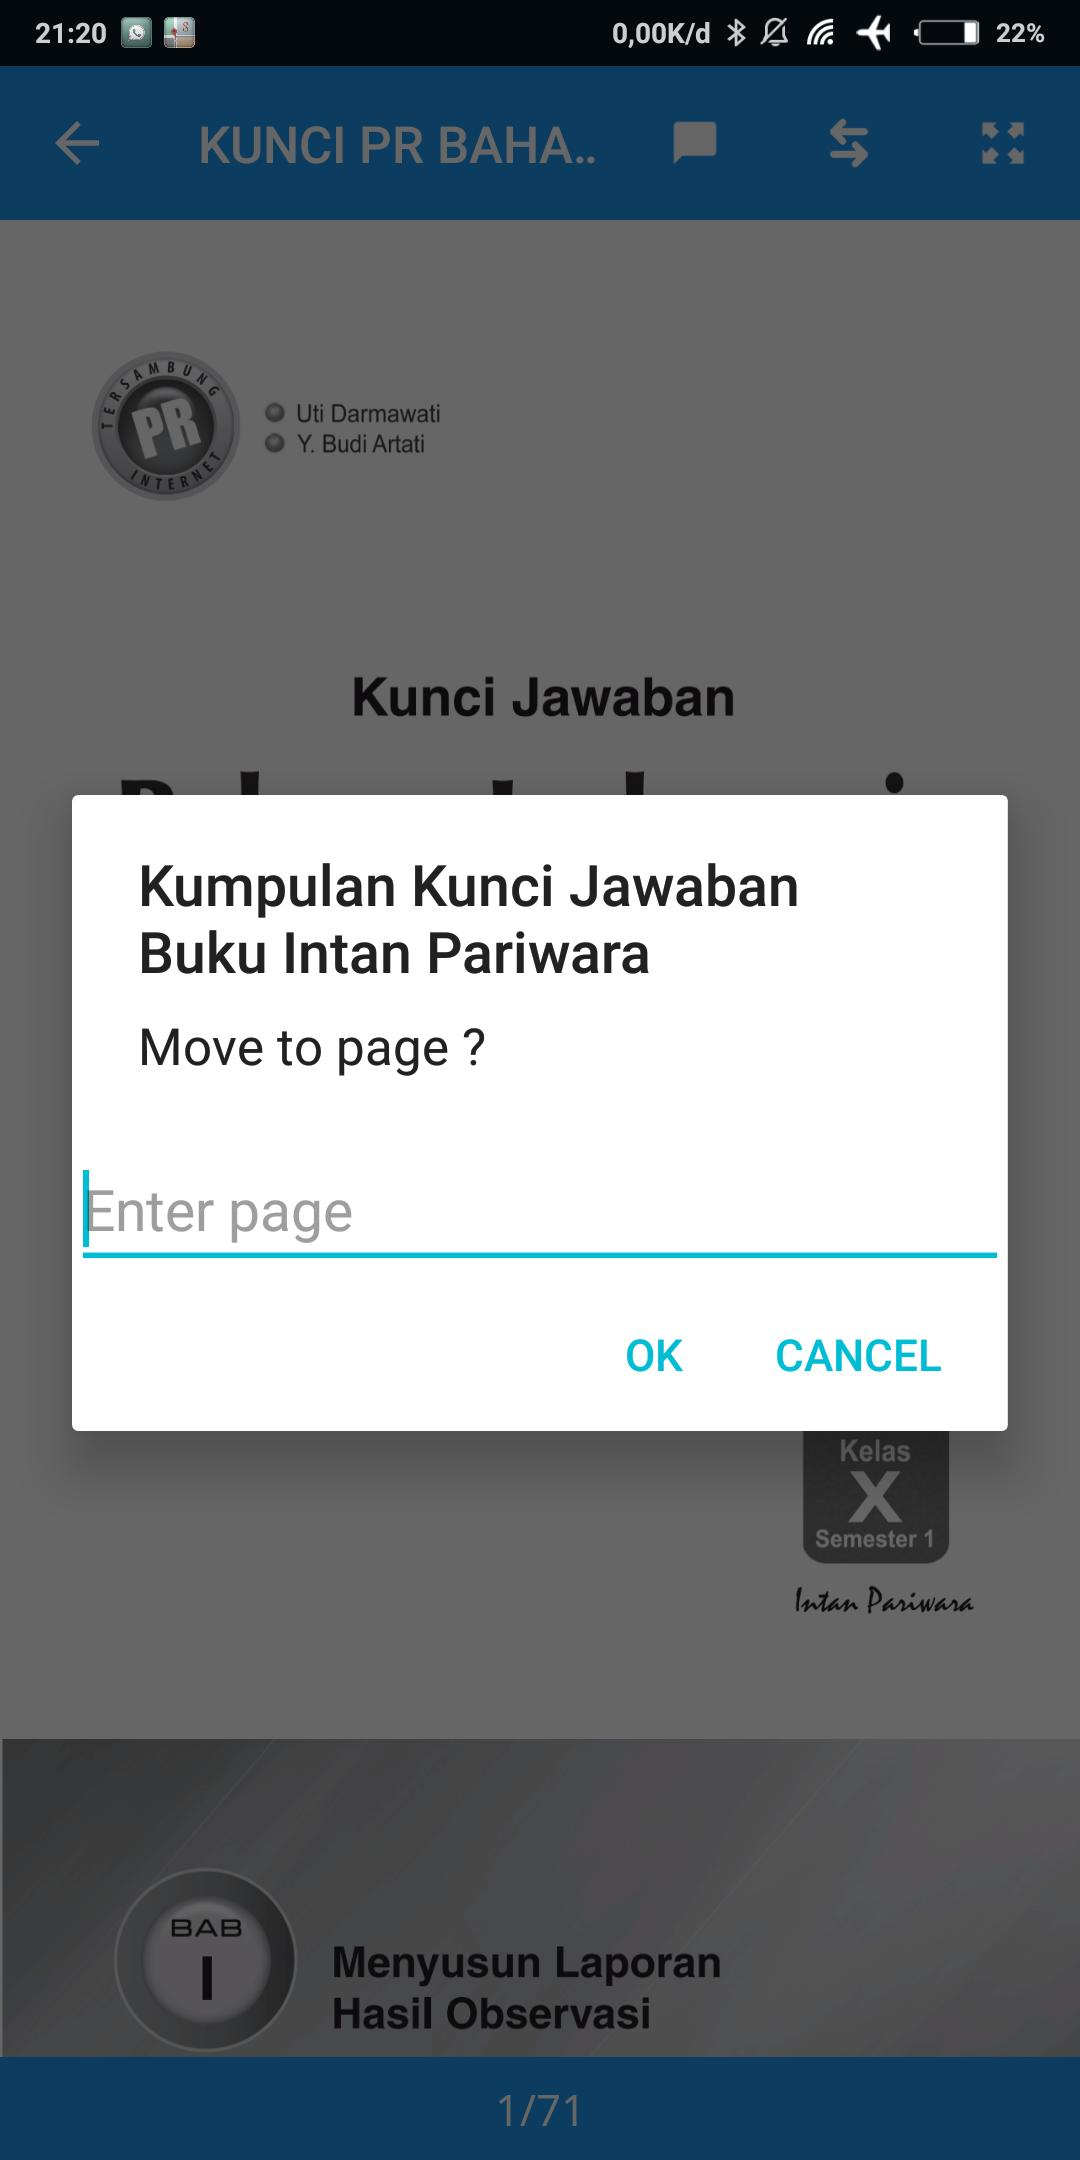 Kumpulan Kunci Jawaban Buku Intan Pariwara For Android Apk Download